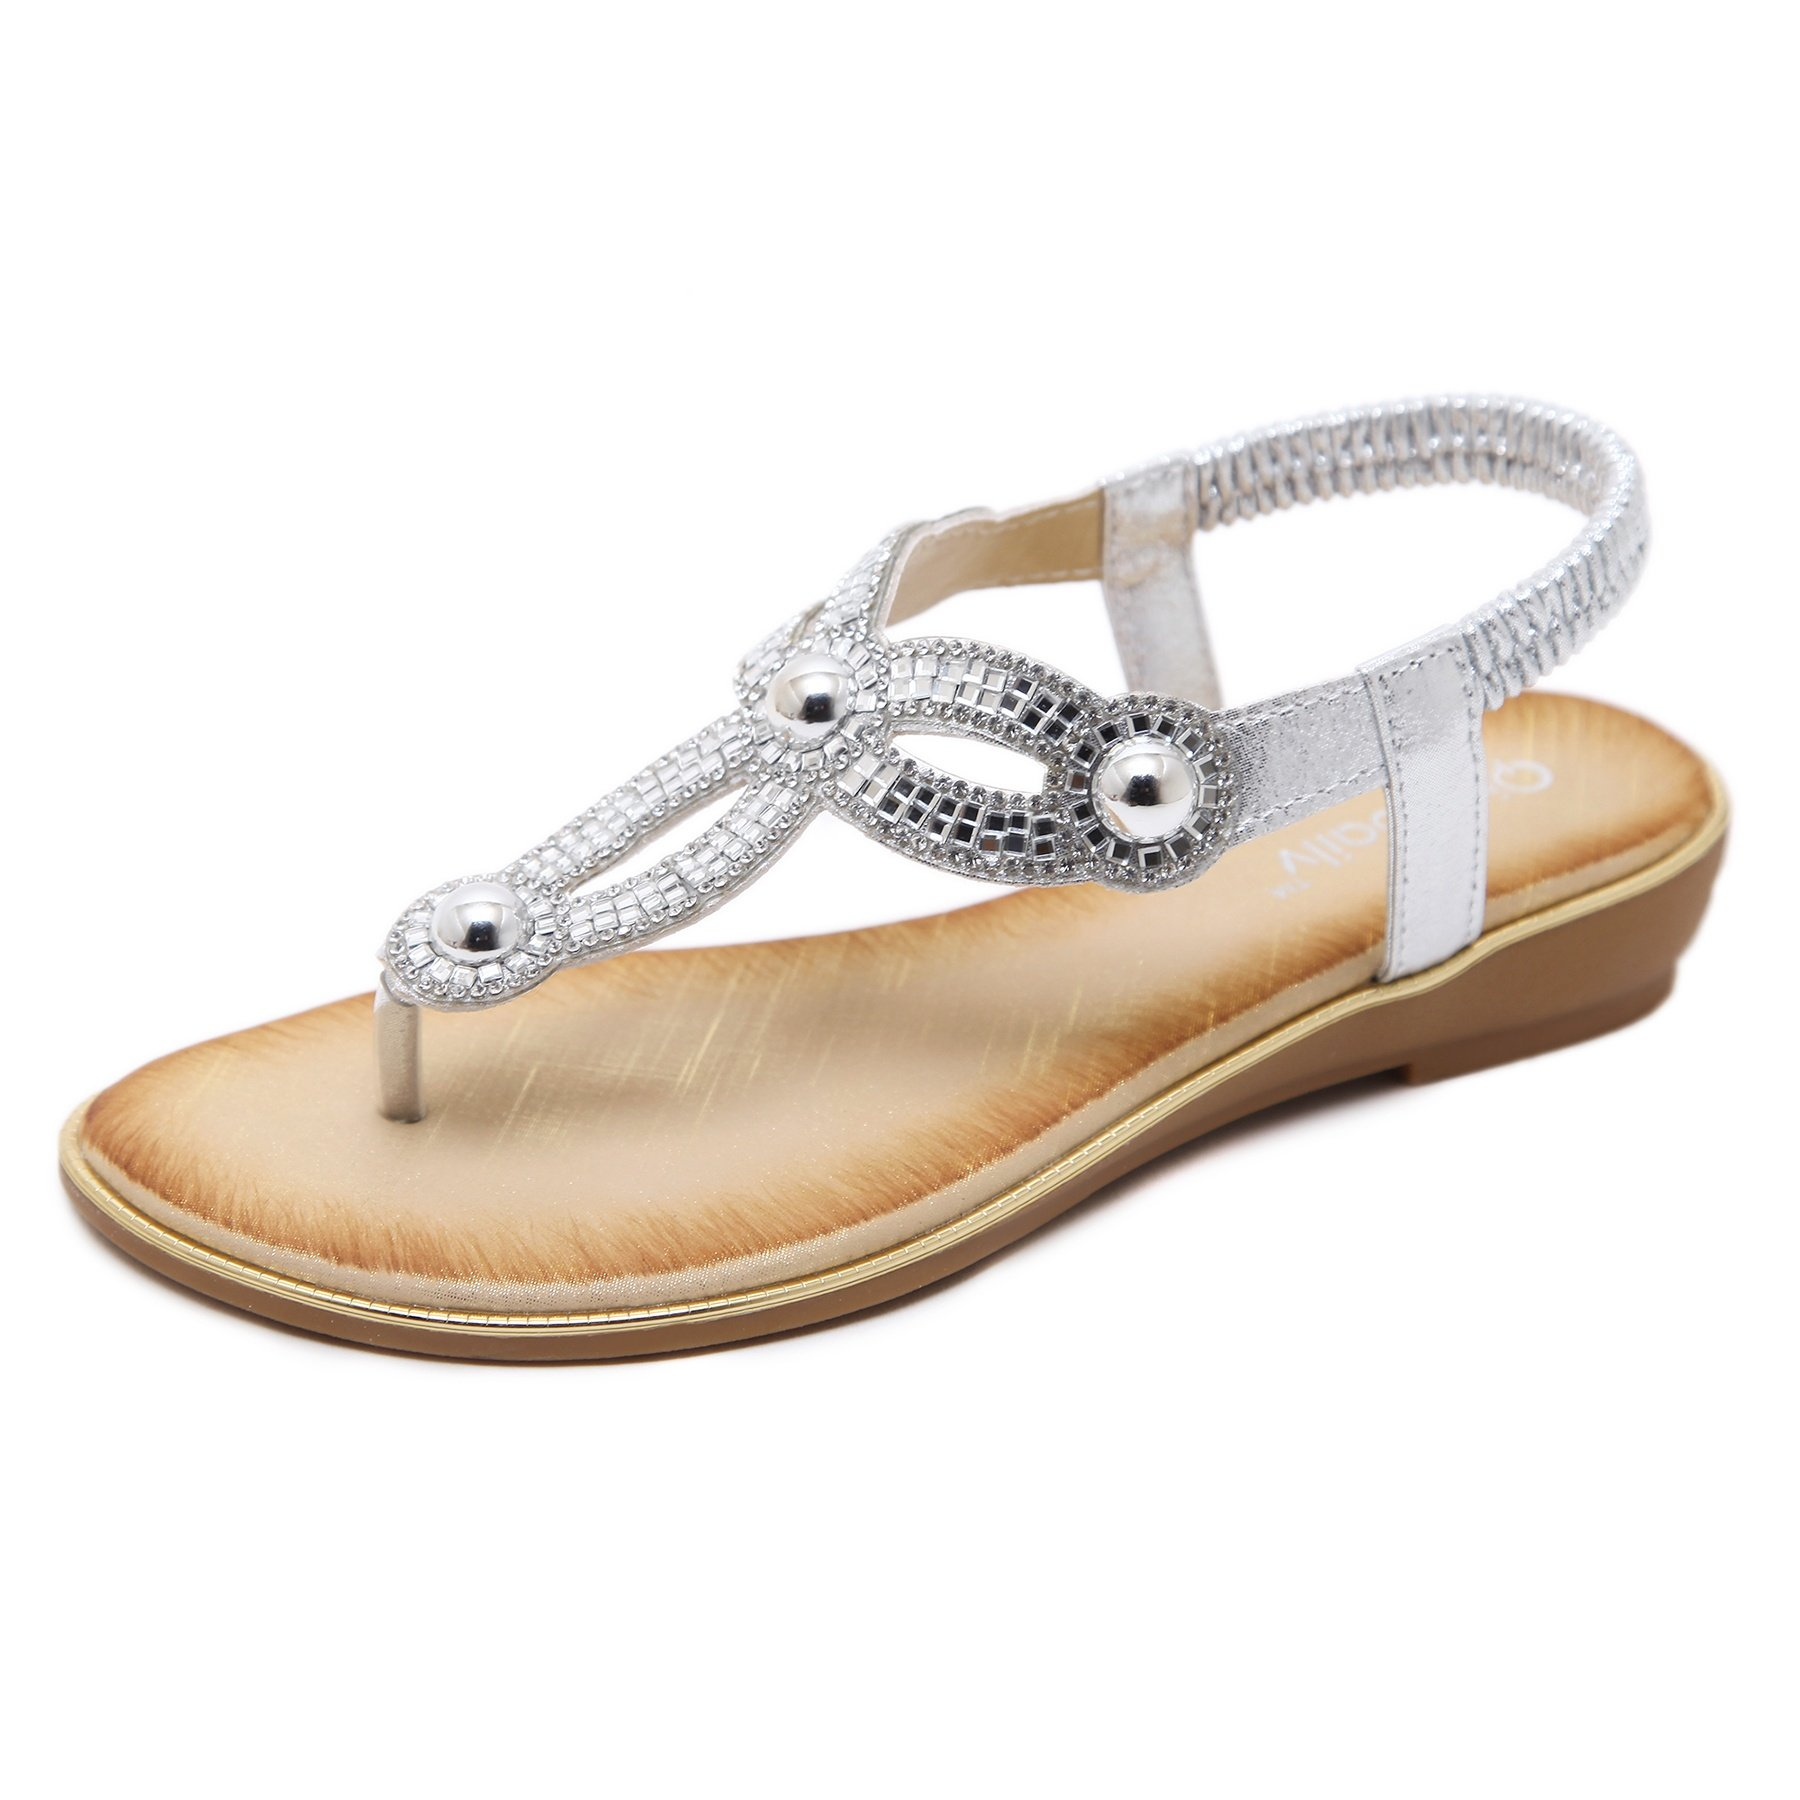 Meeshine Womens Summer Thong Flat Sandals T-Strap Bohemian Rhinestone Slip On Flip Flops Shoes Silver-02 US 8